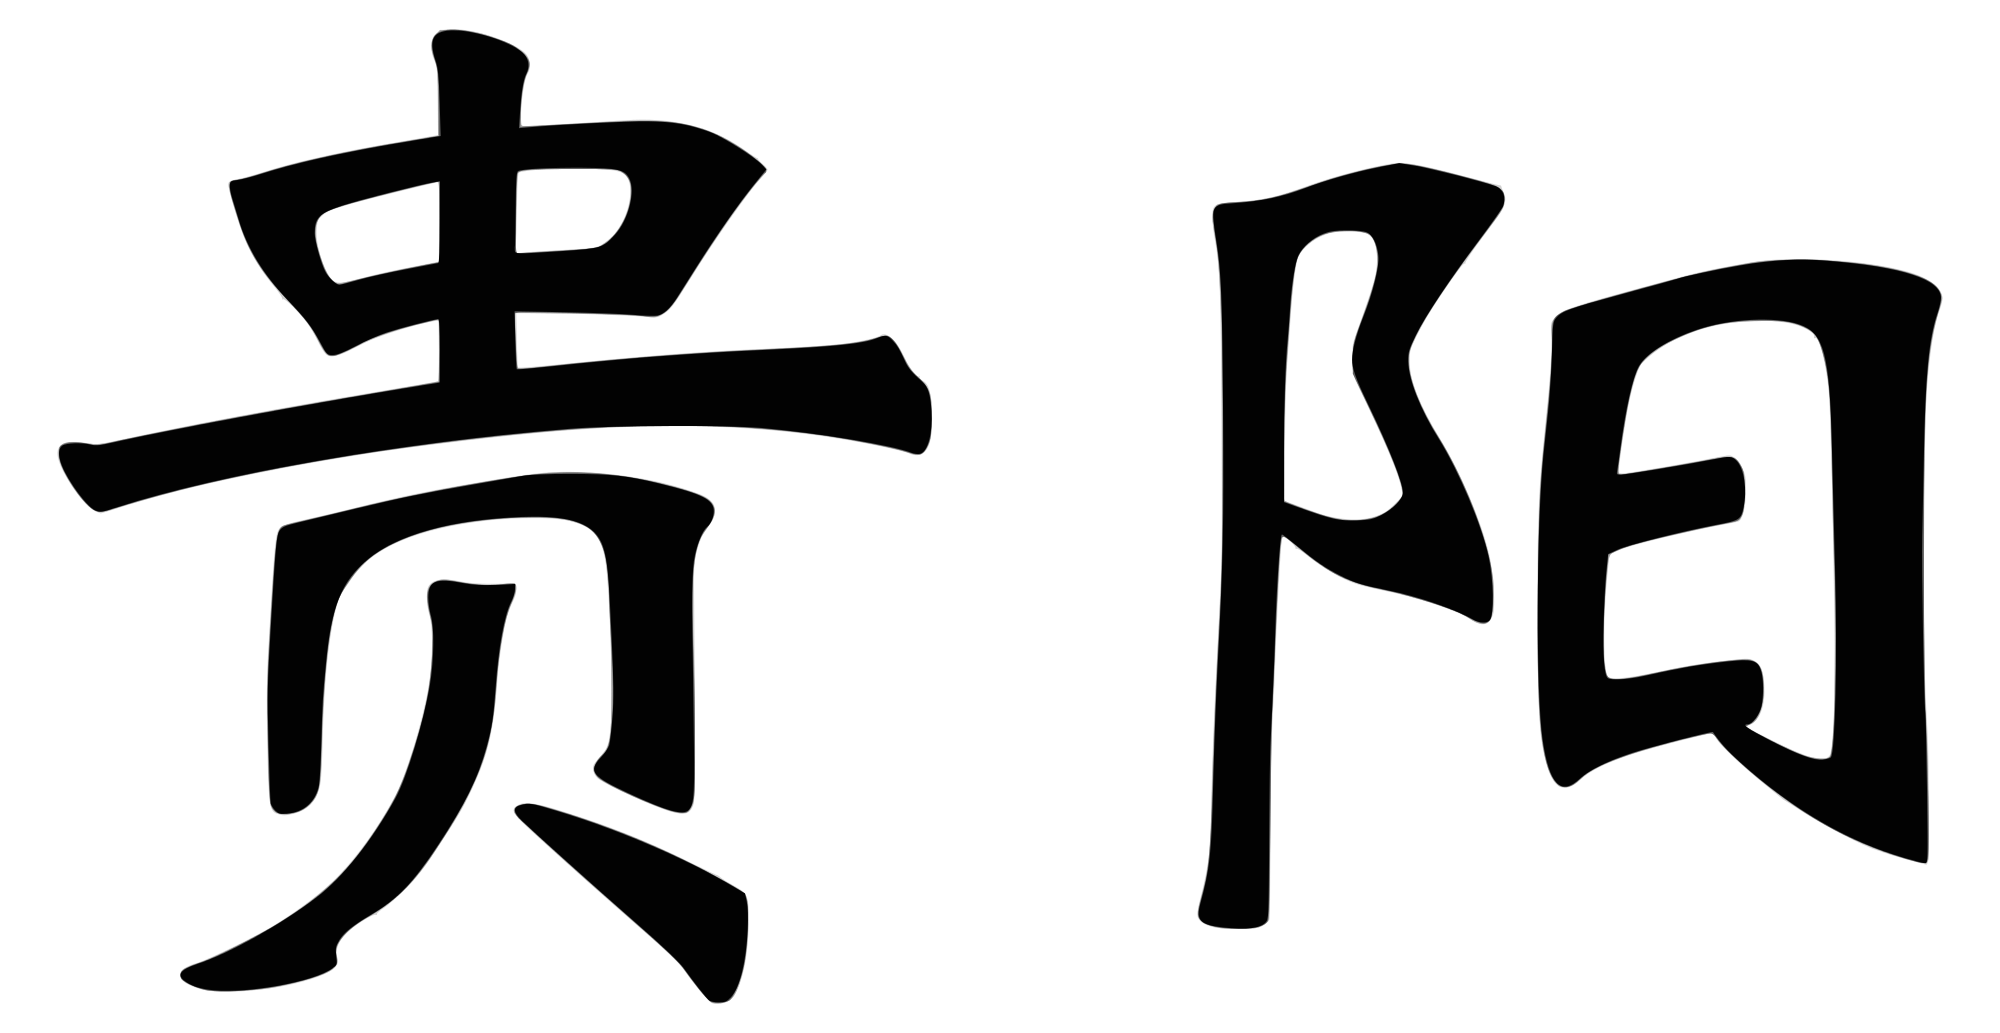 Chinese svg #9, Download drawings